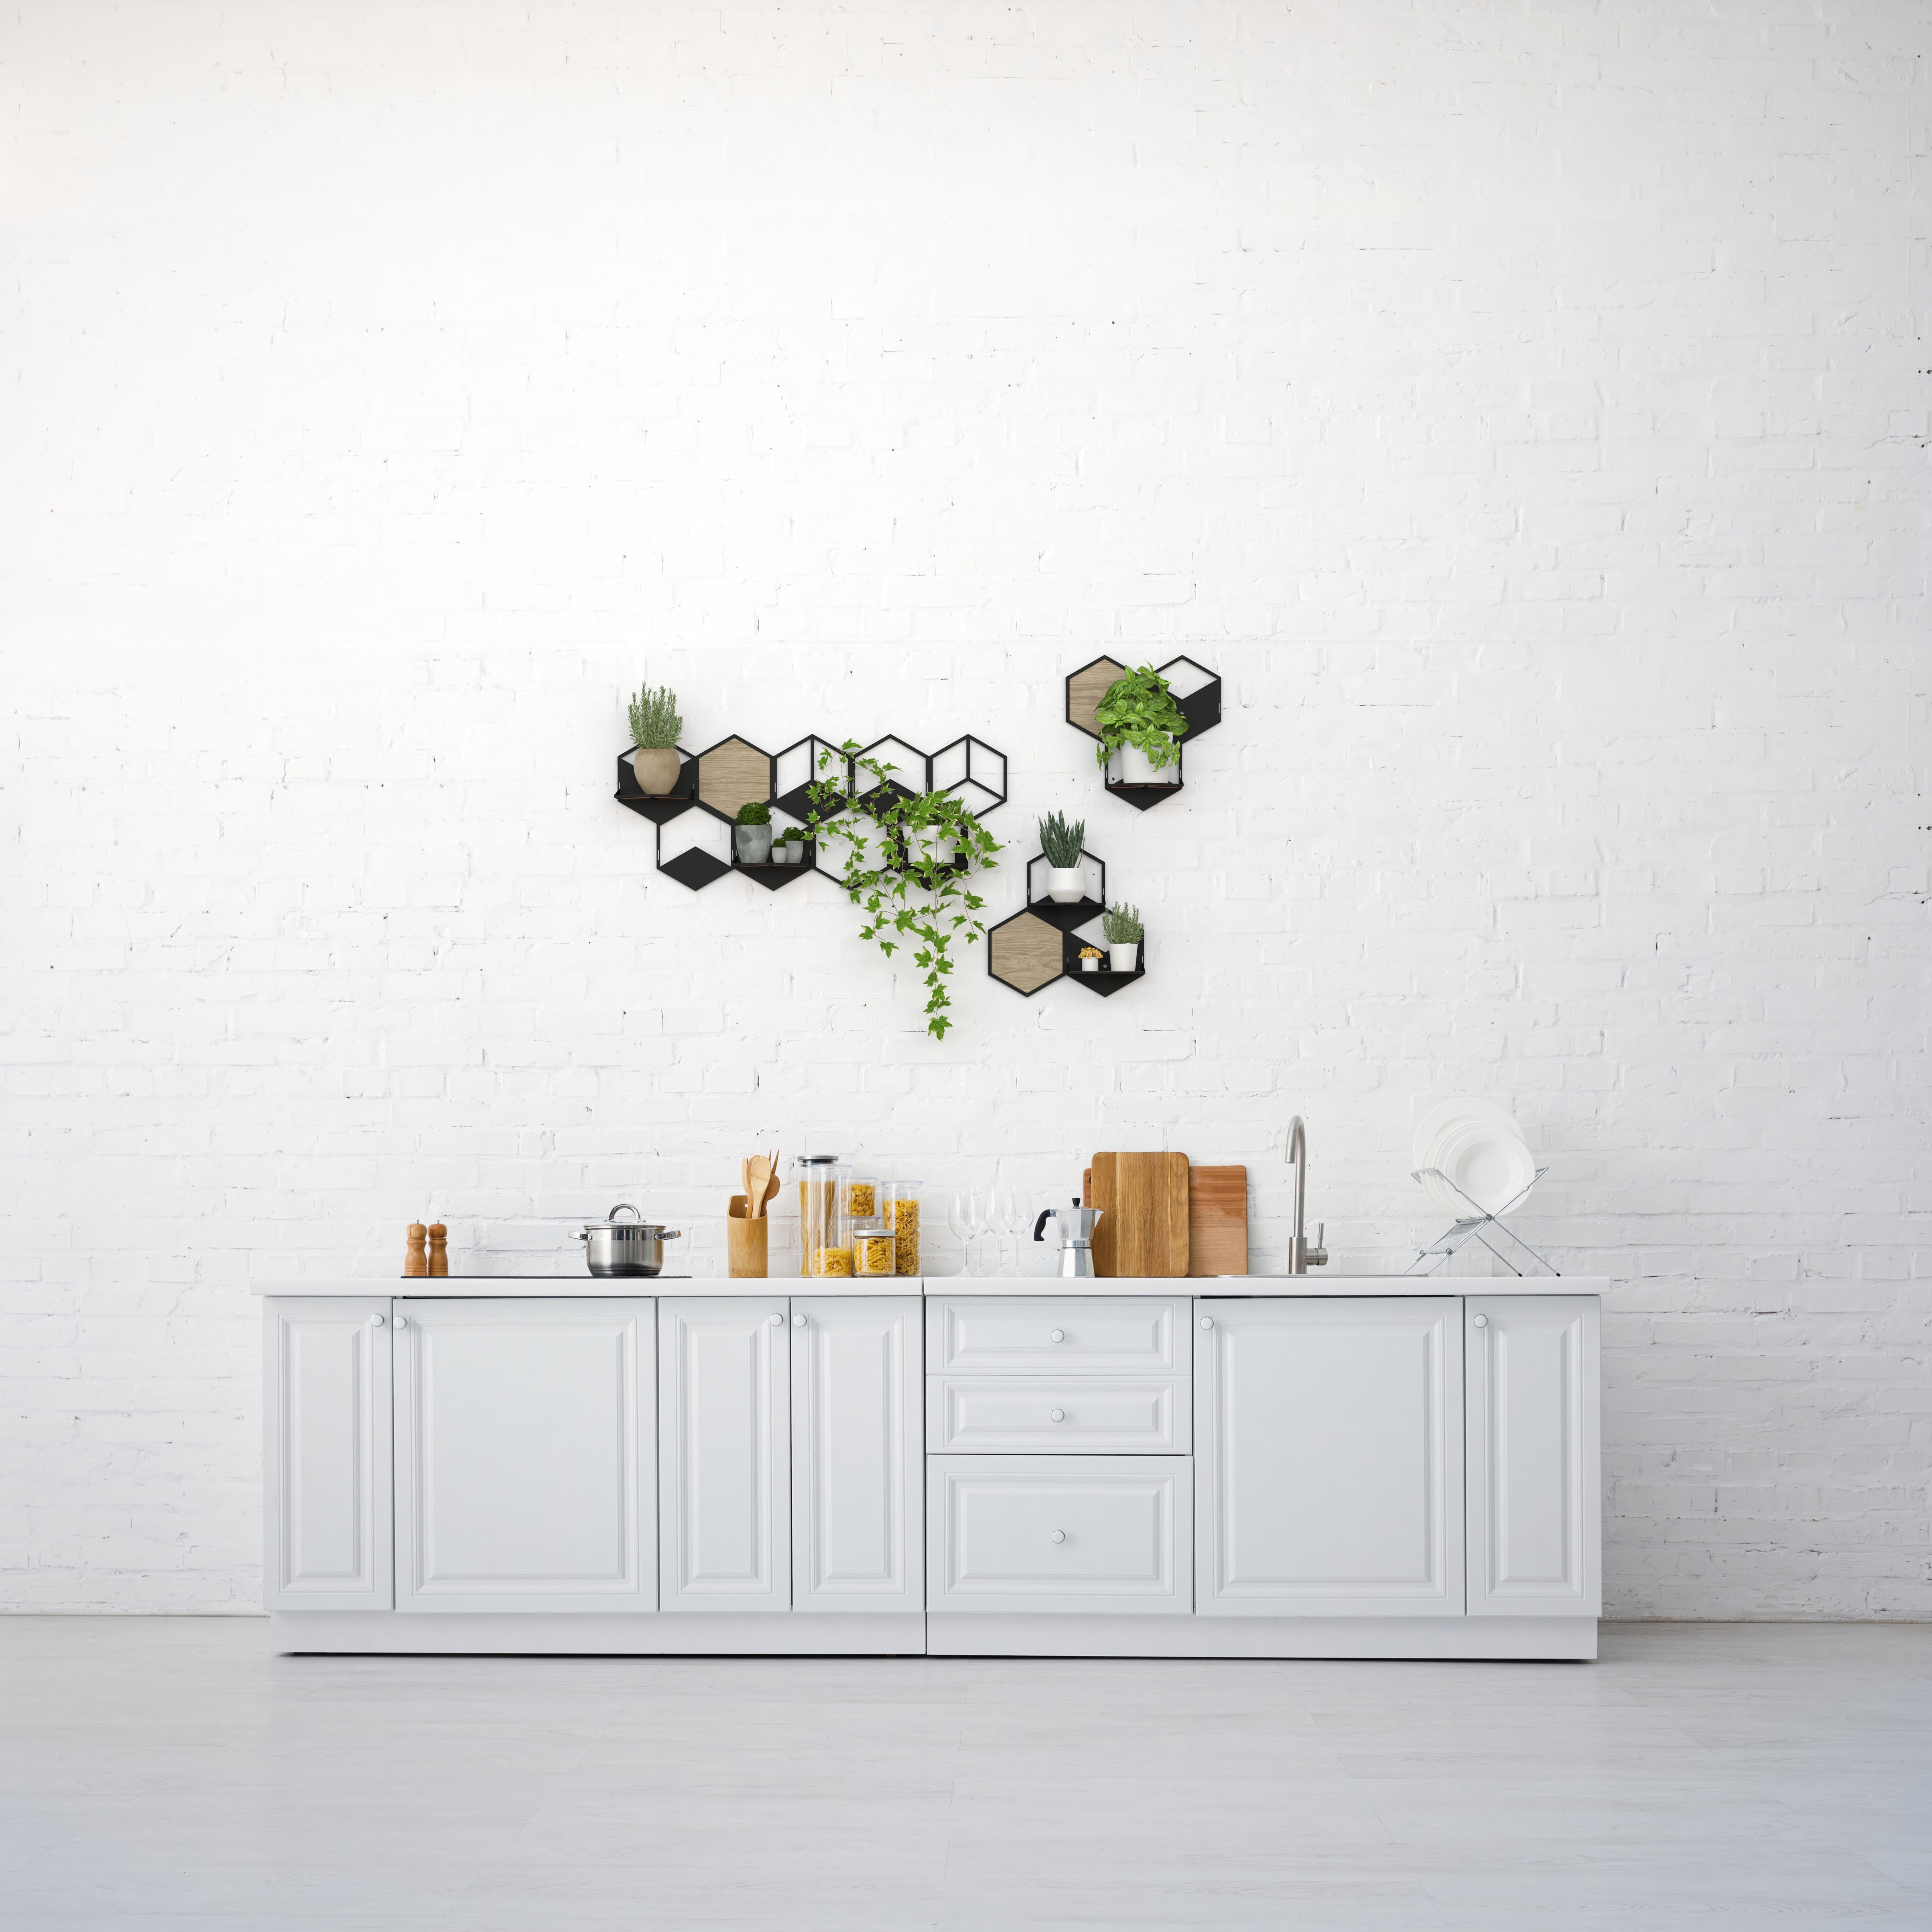 Photo of Third Wave Cafe Shop Design, Wall Decoration, Metal Planter Design, Modular Wall Plant Holders